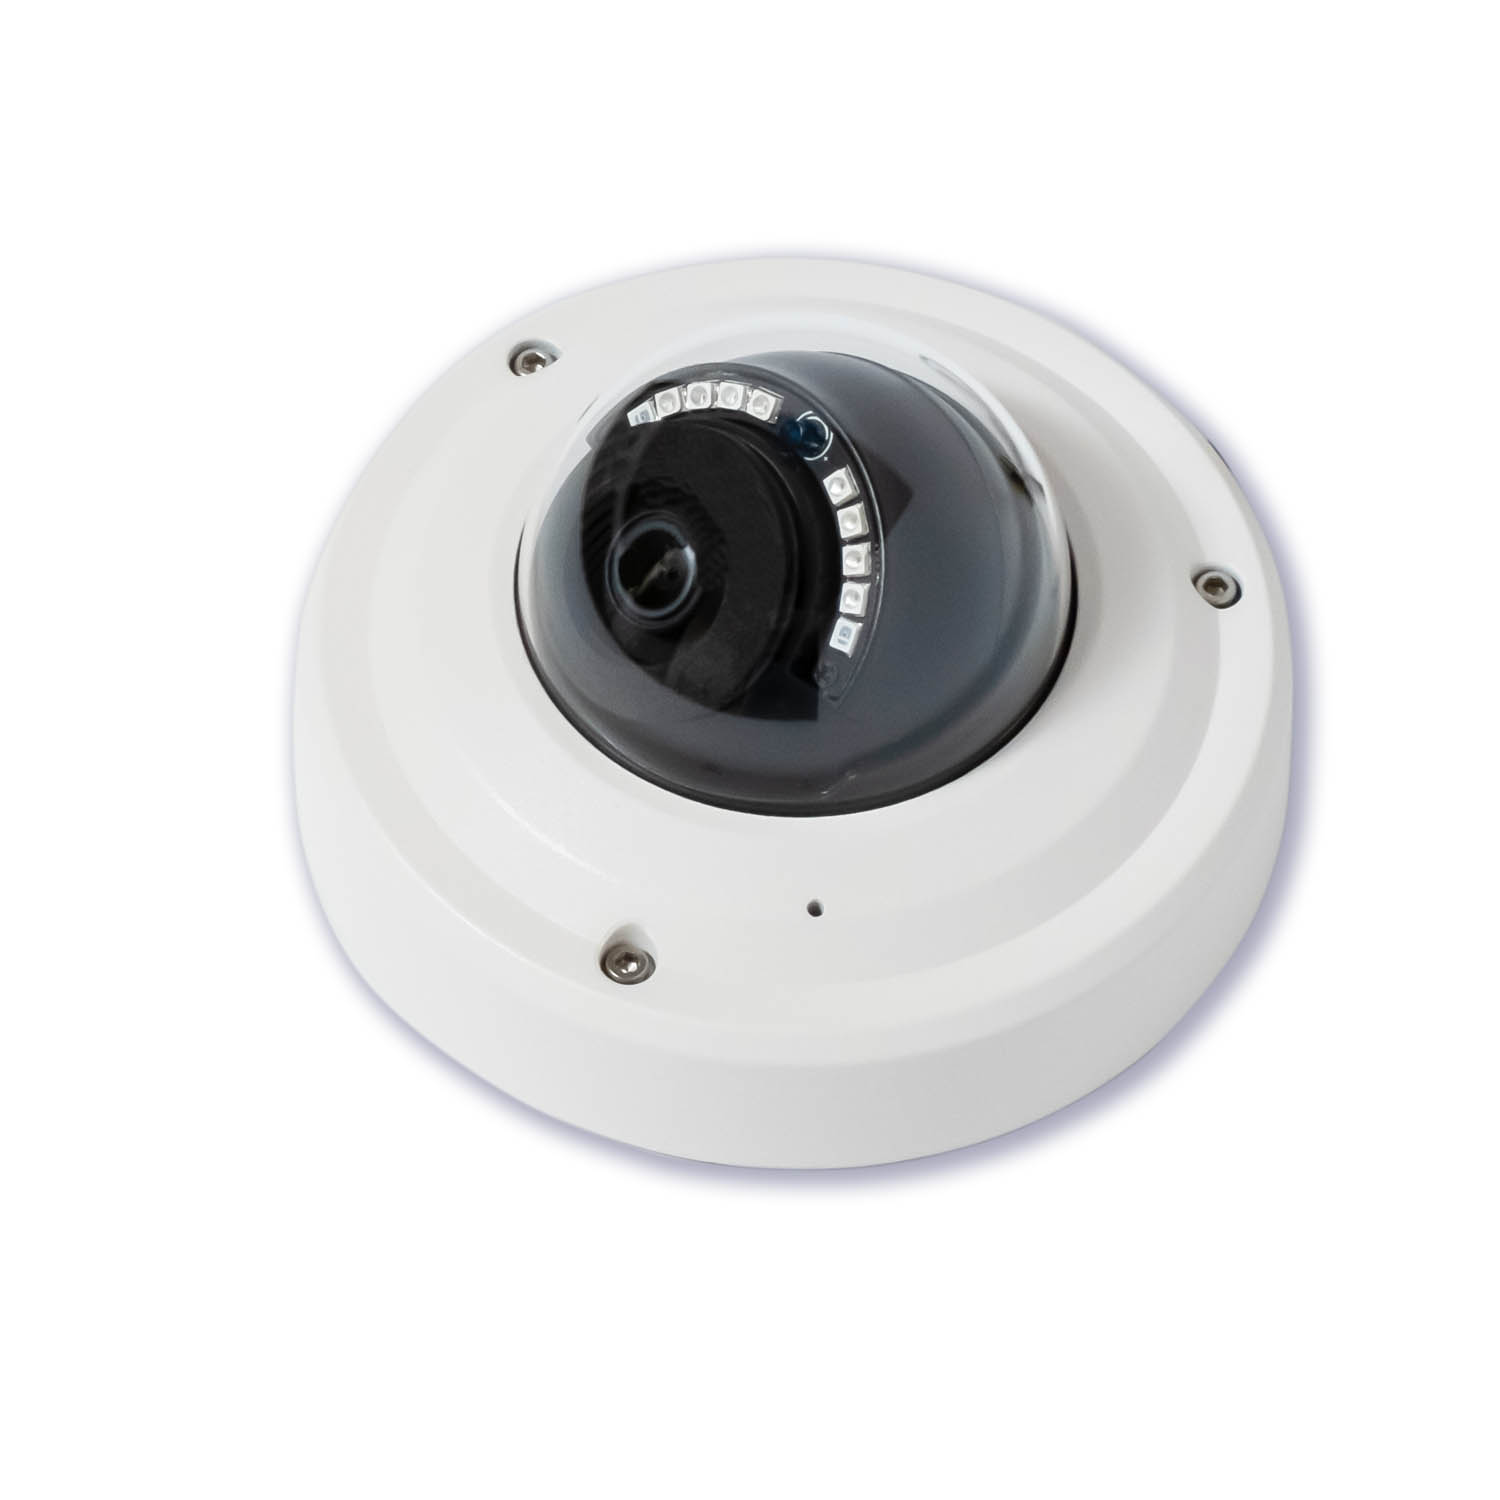 LED Street Light Camera